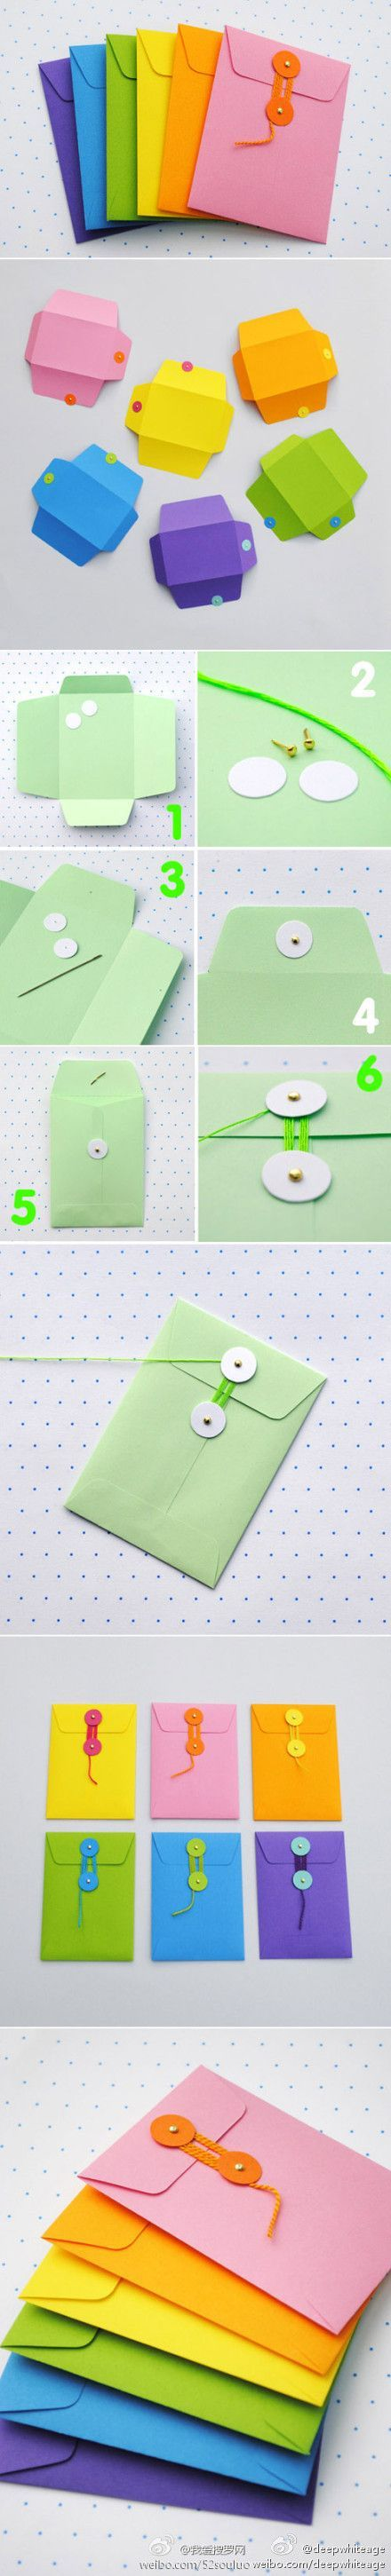 DIY string tie envelopes. Tutorial here: | http://scrapbookphotos516.kira.lemoncoin.org